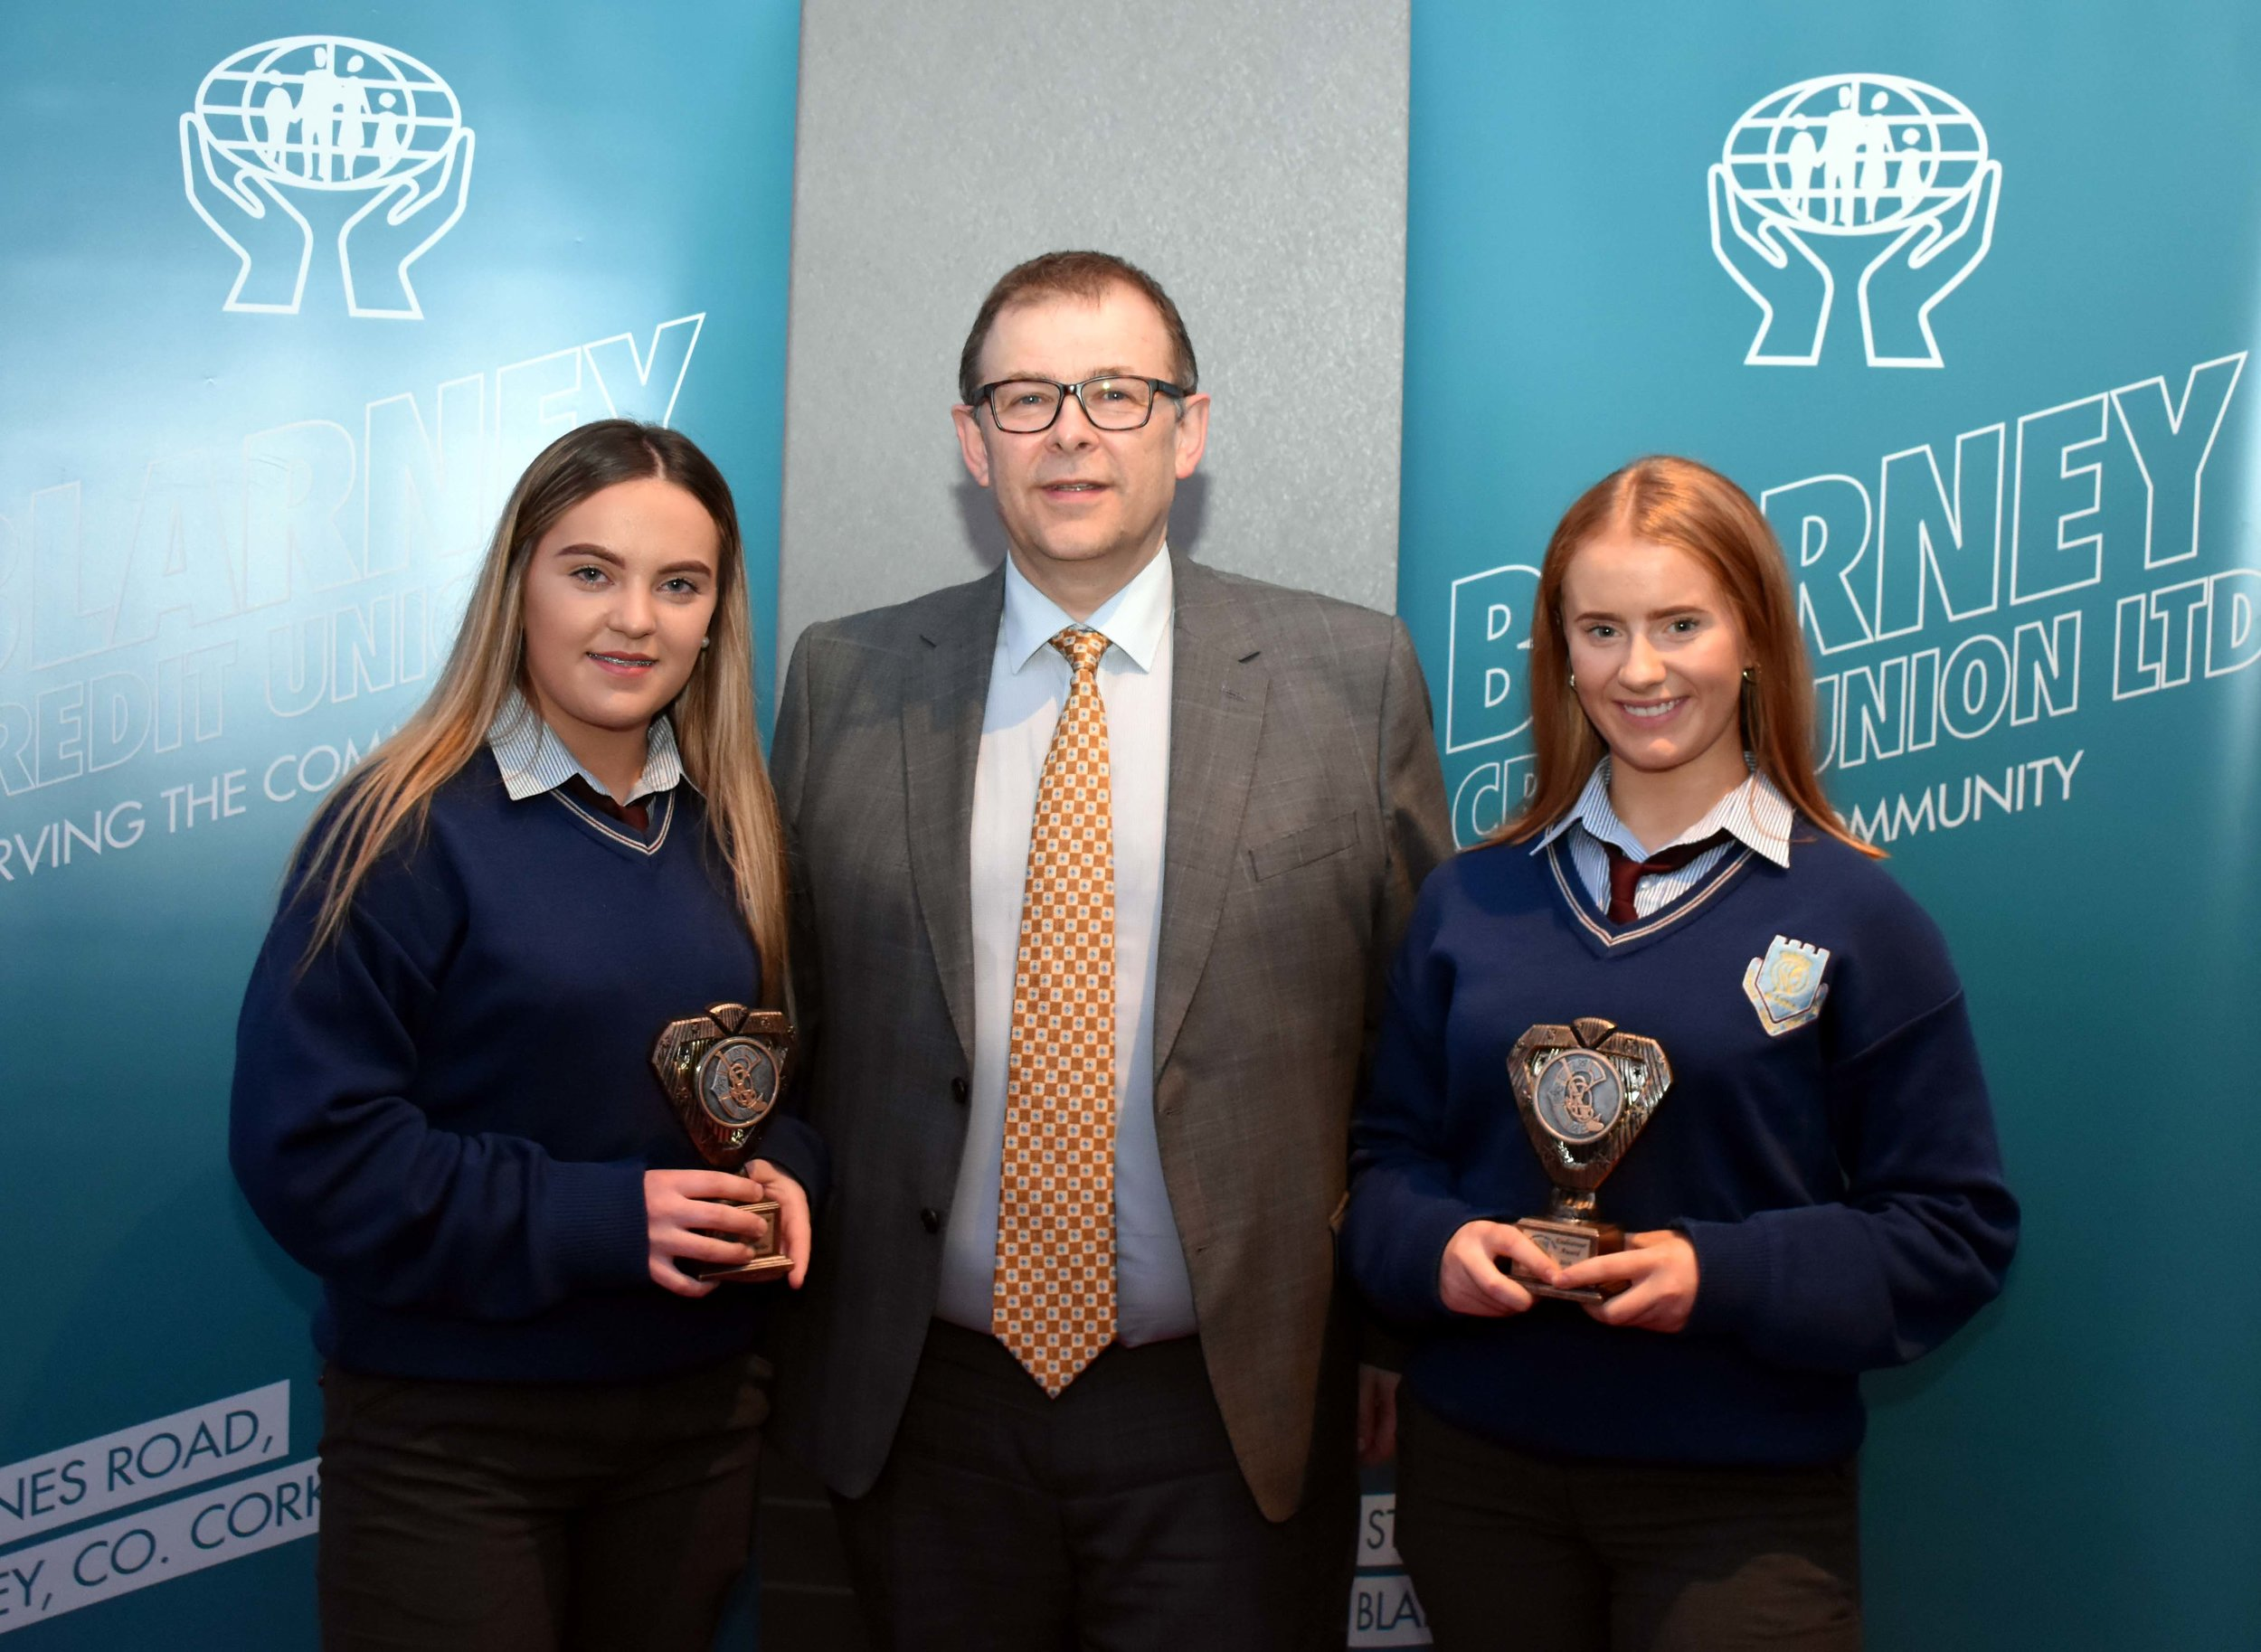 Emily Buckley and Orla Cremen receiving an endeavour award for winning a Minor All Ireland with Cork Camogie. (Pictured with Mr. Mark McGloughlin - BOM and Blarney Credit Union)